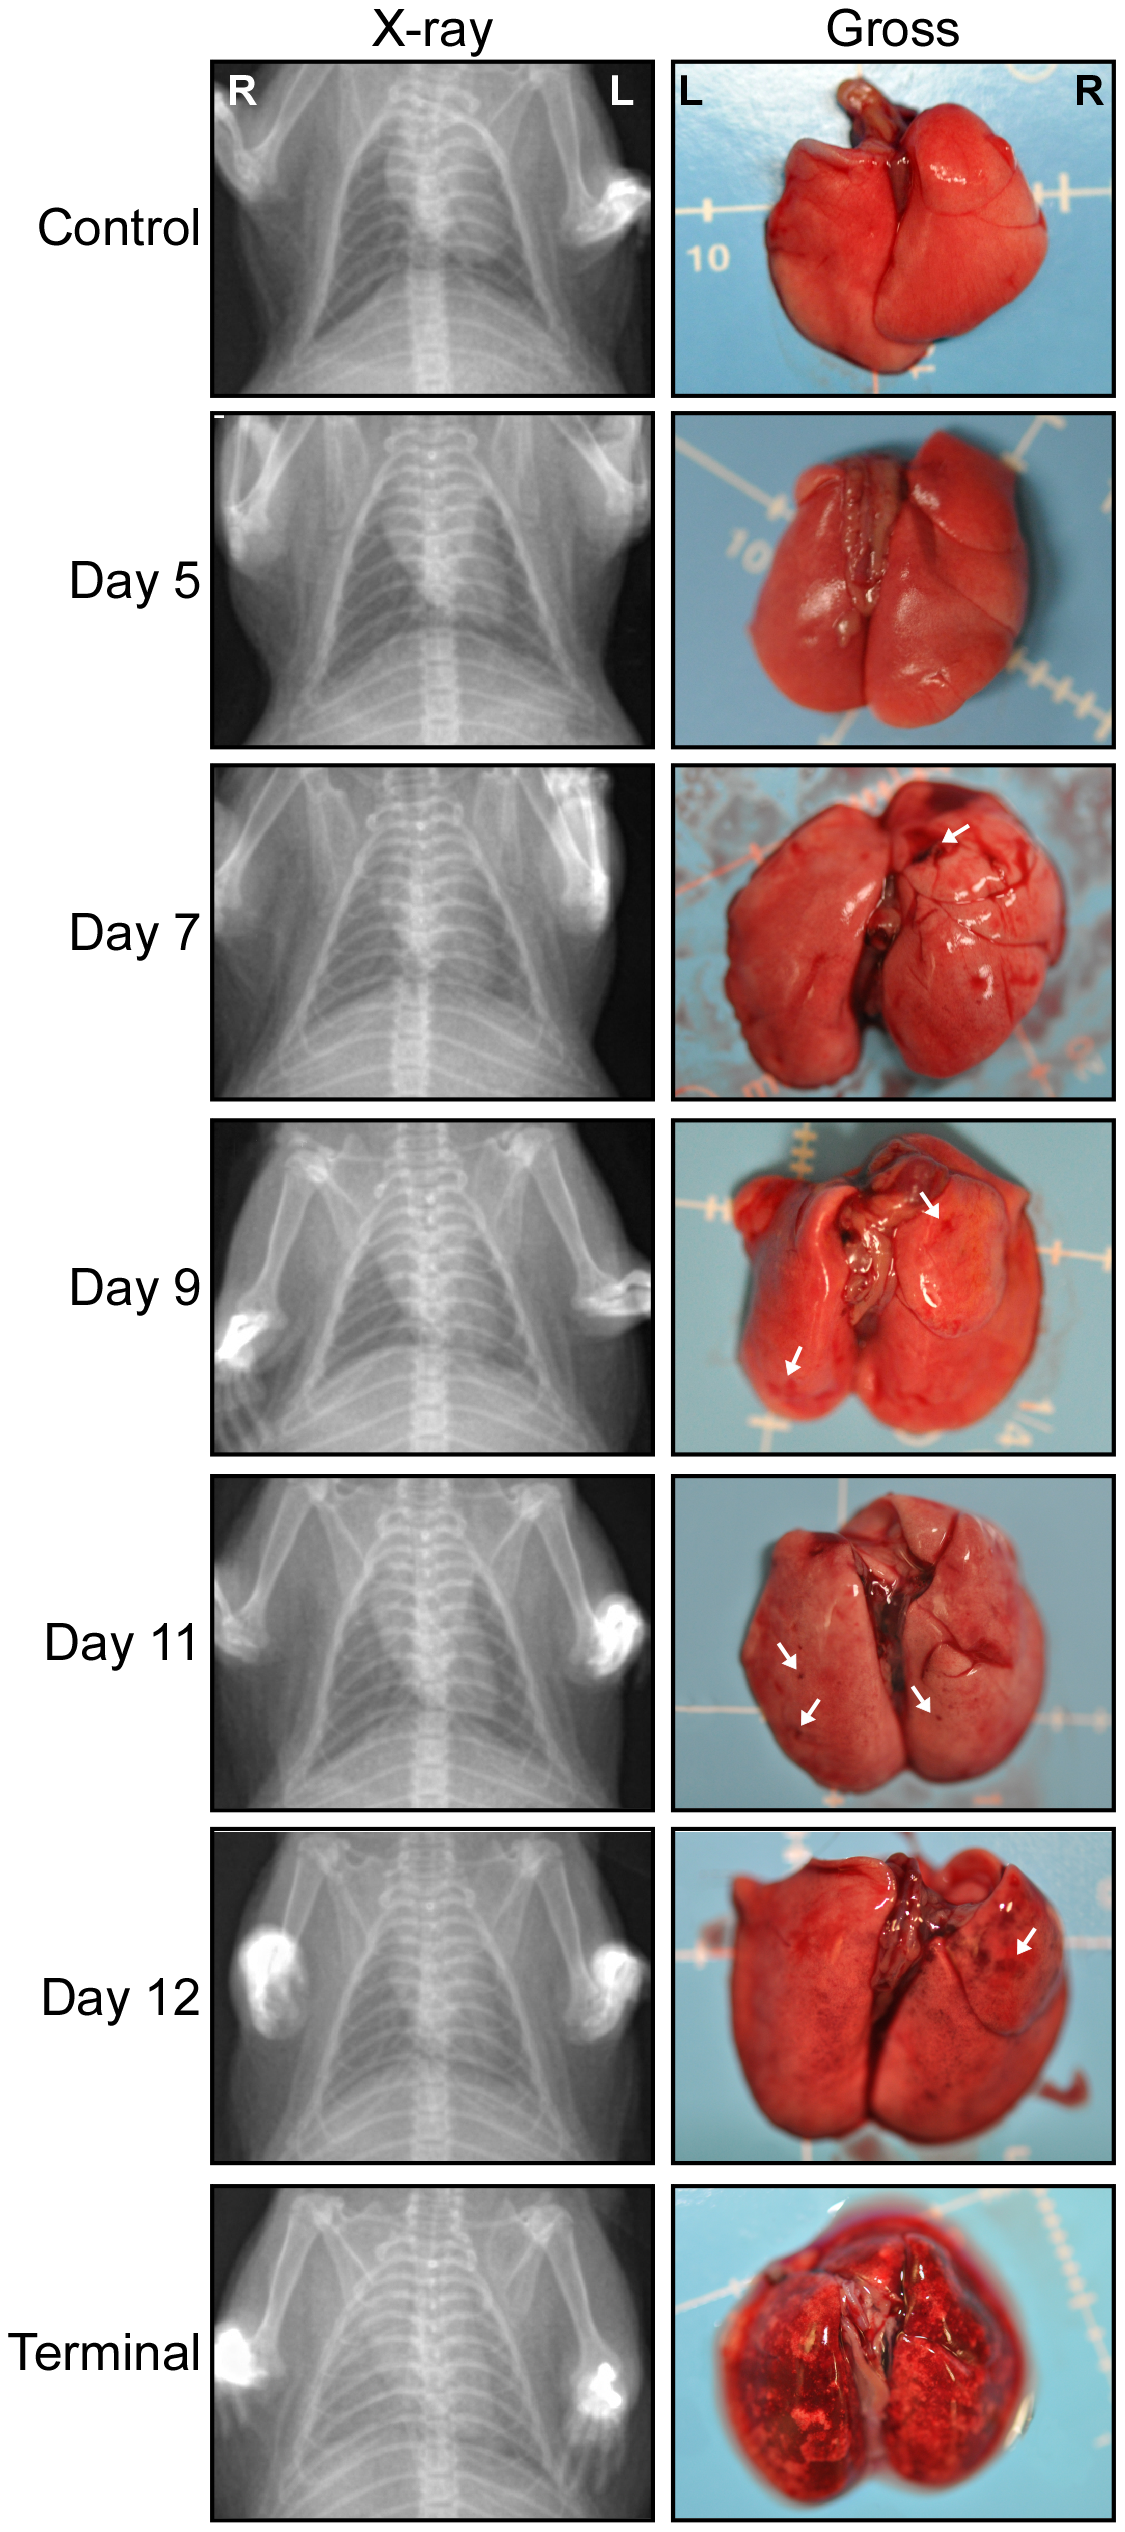 Radiographic imaging and gross lung pathology associated with HPS in hamsters.